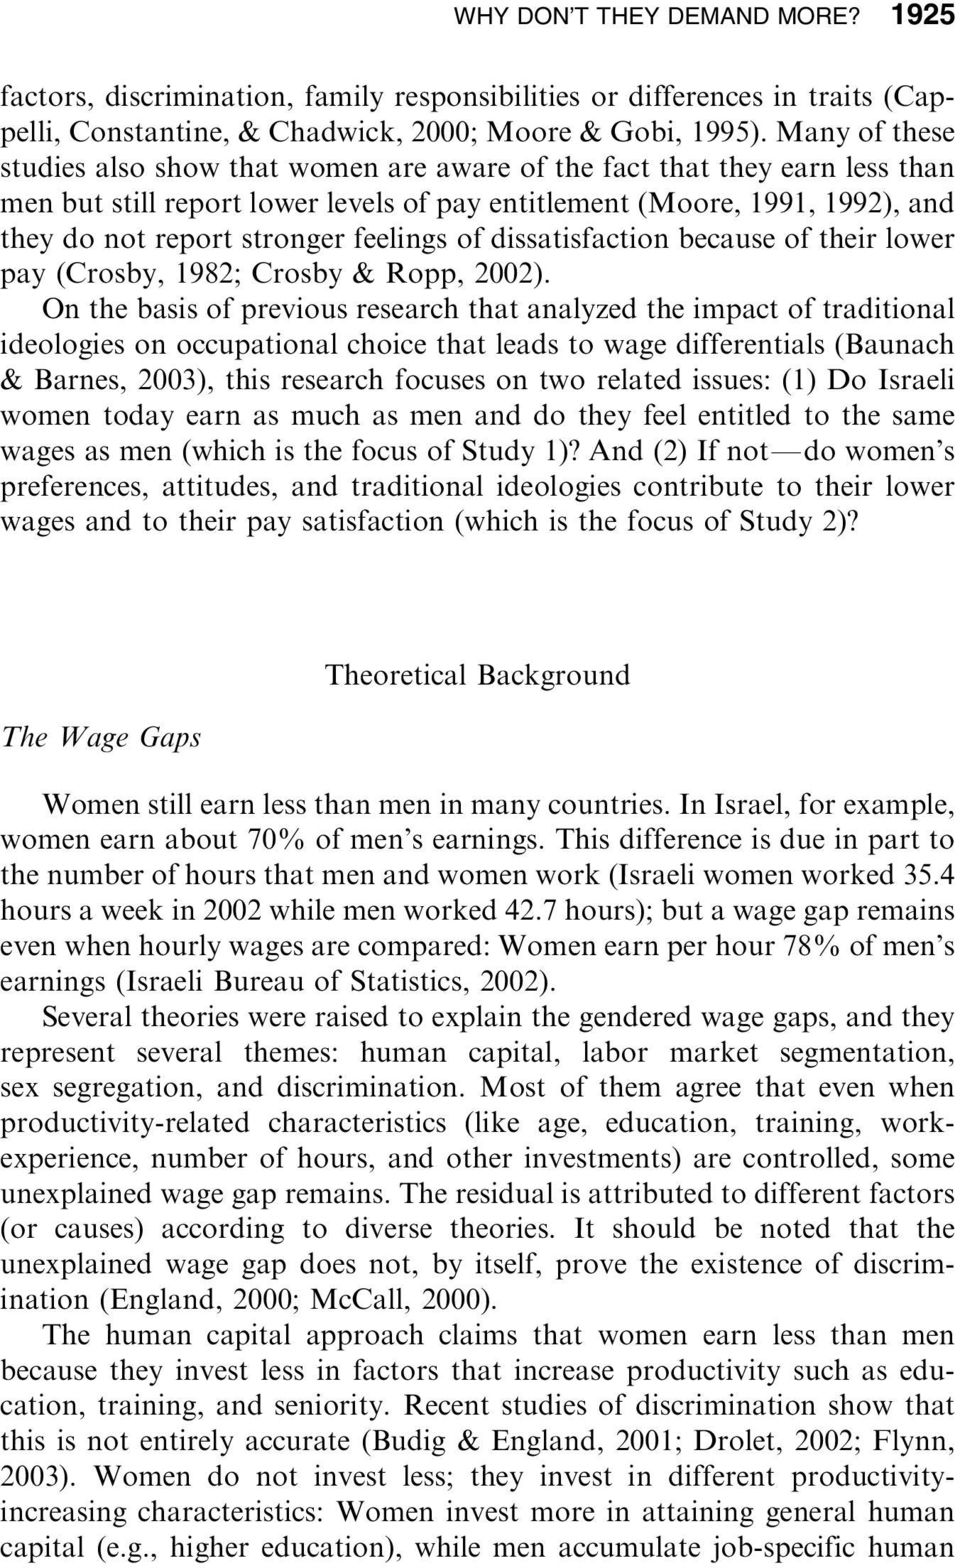 feelings of dissatisfaction because of their lower pay (Crosby, 1982; Crosby & Ropp, 2002).